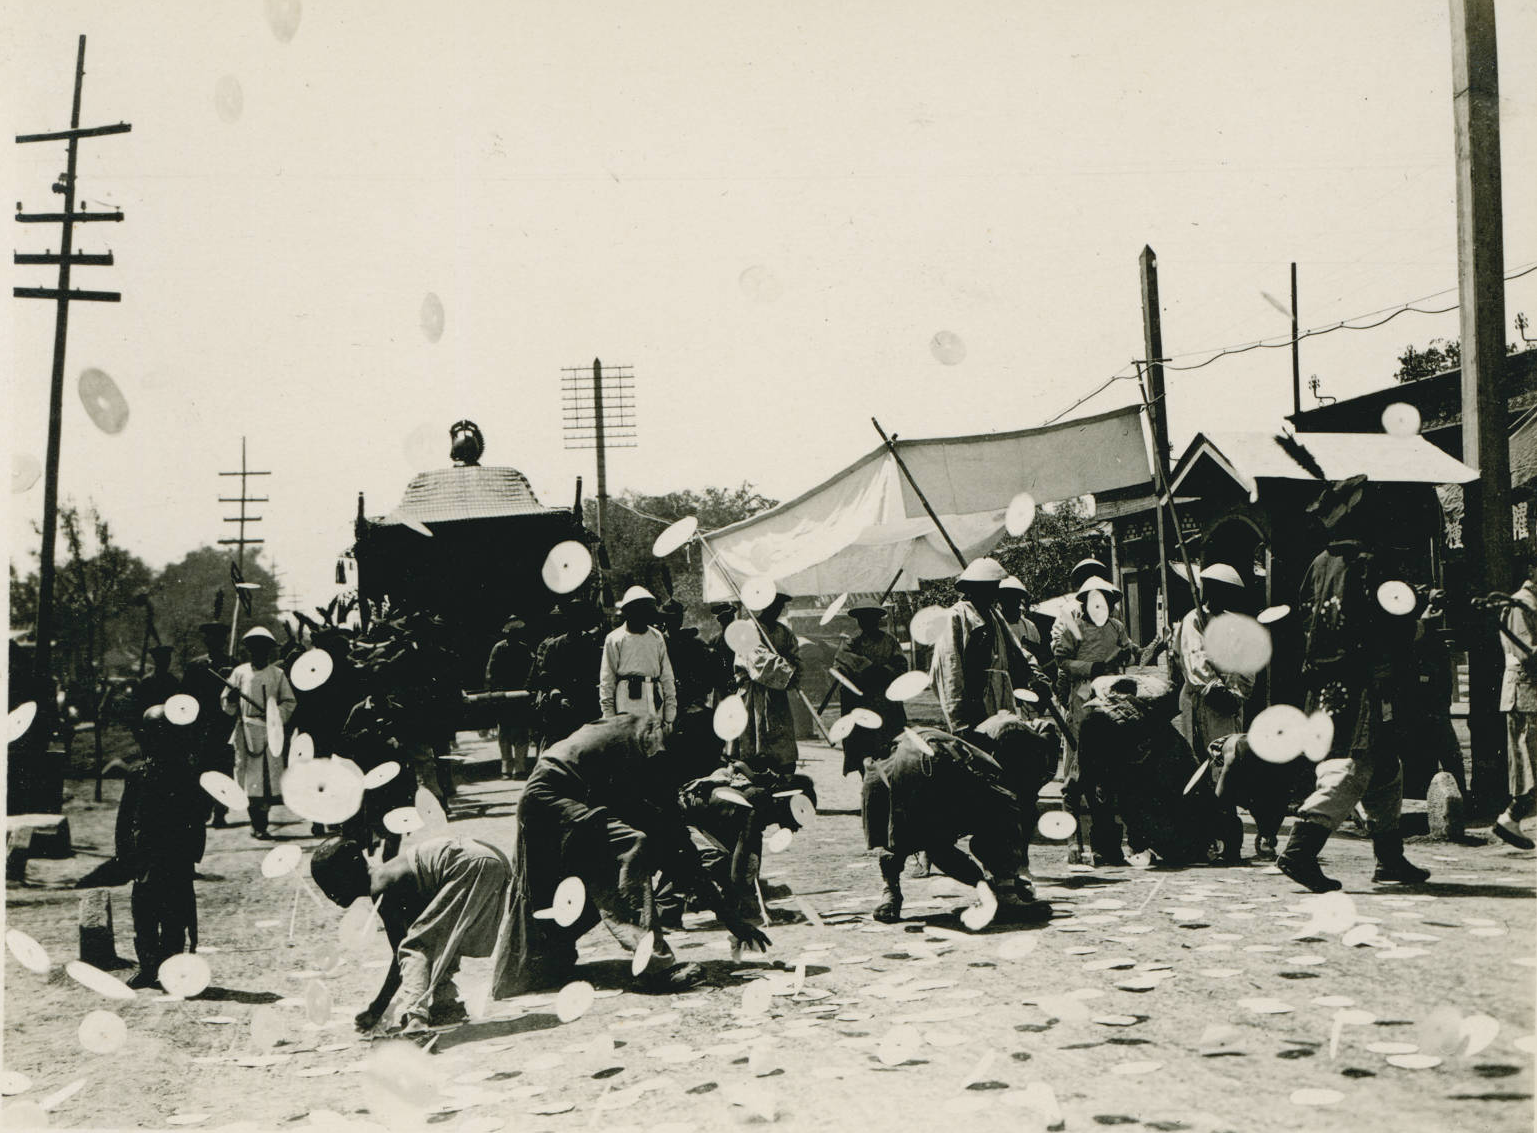 Funeral procession white cardboard discs thrown into the air, 1909-05